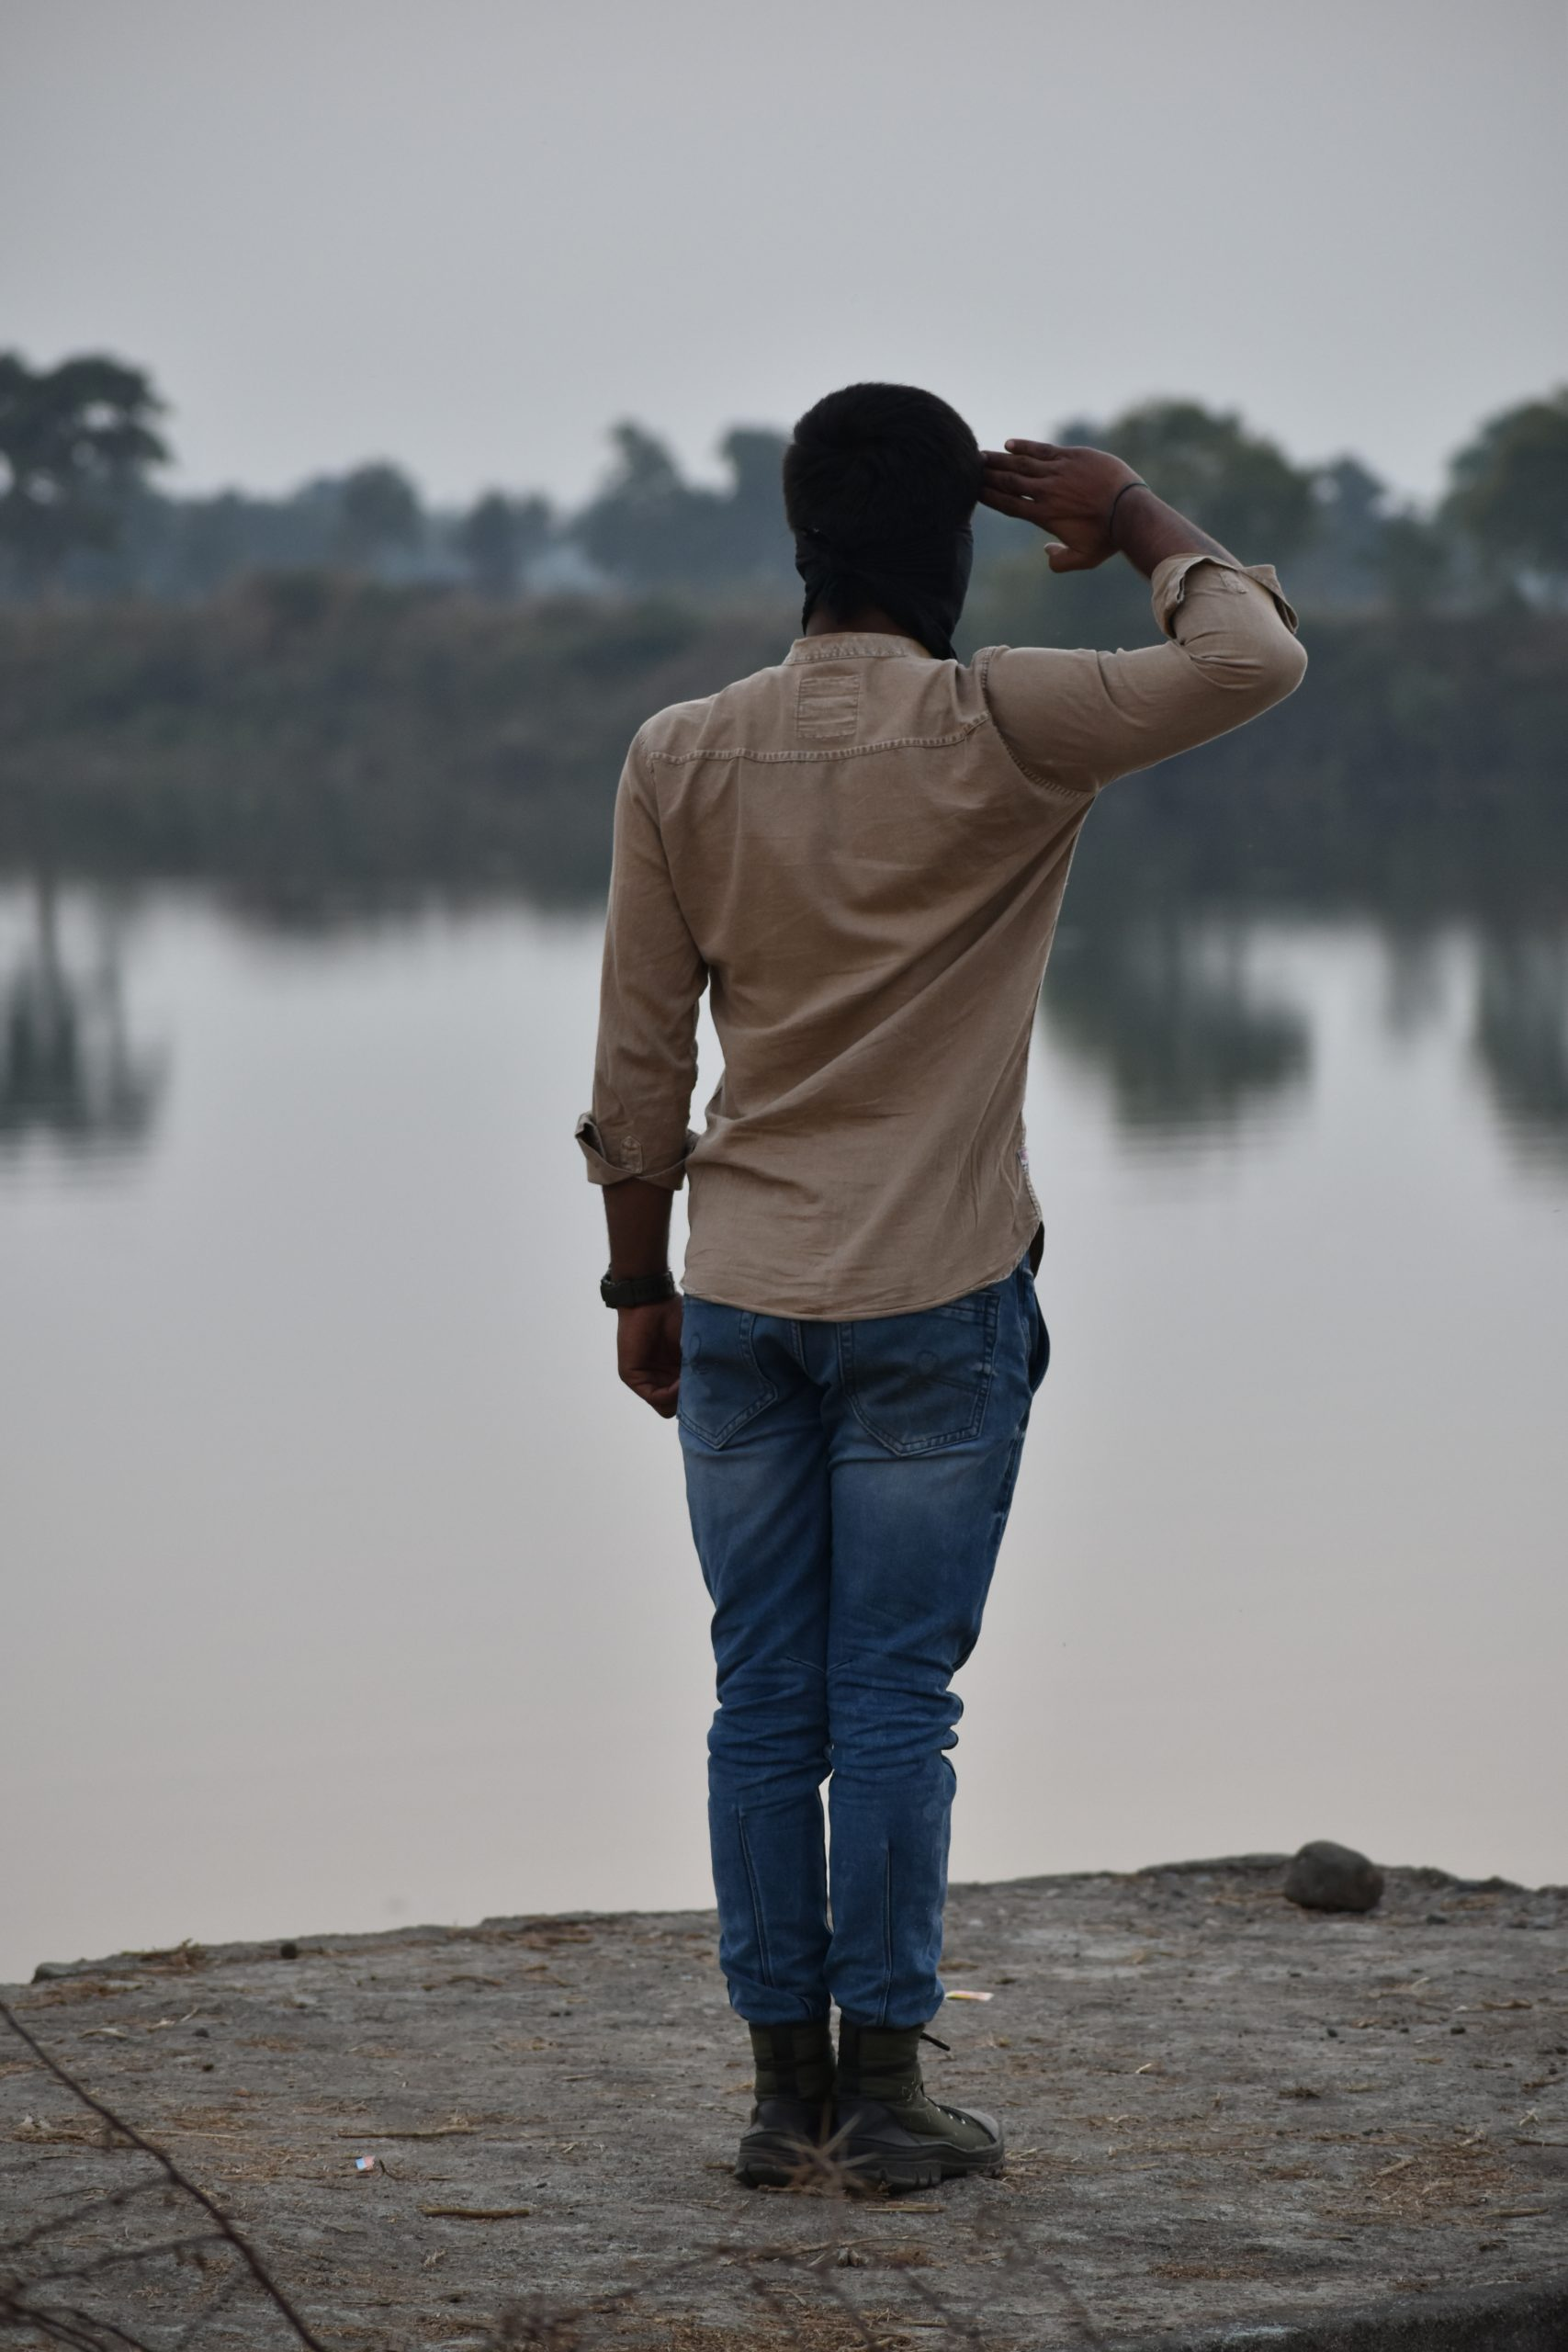 Boy giving salute near the river